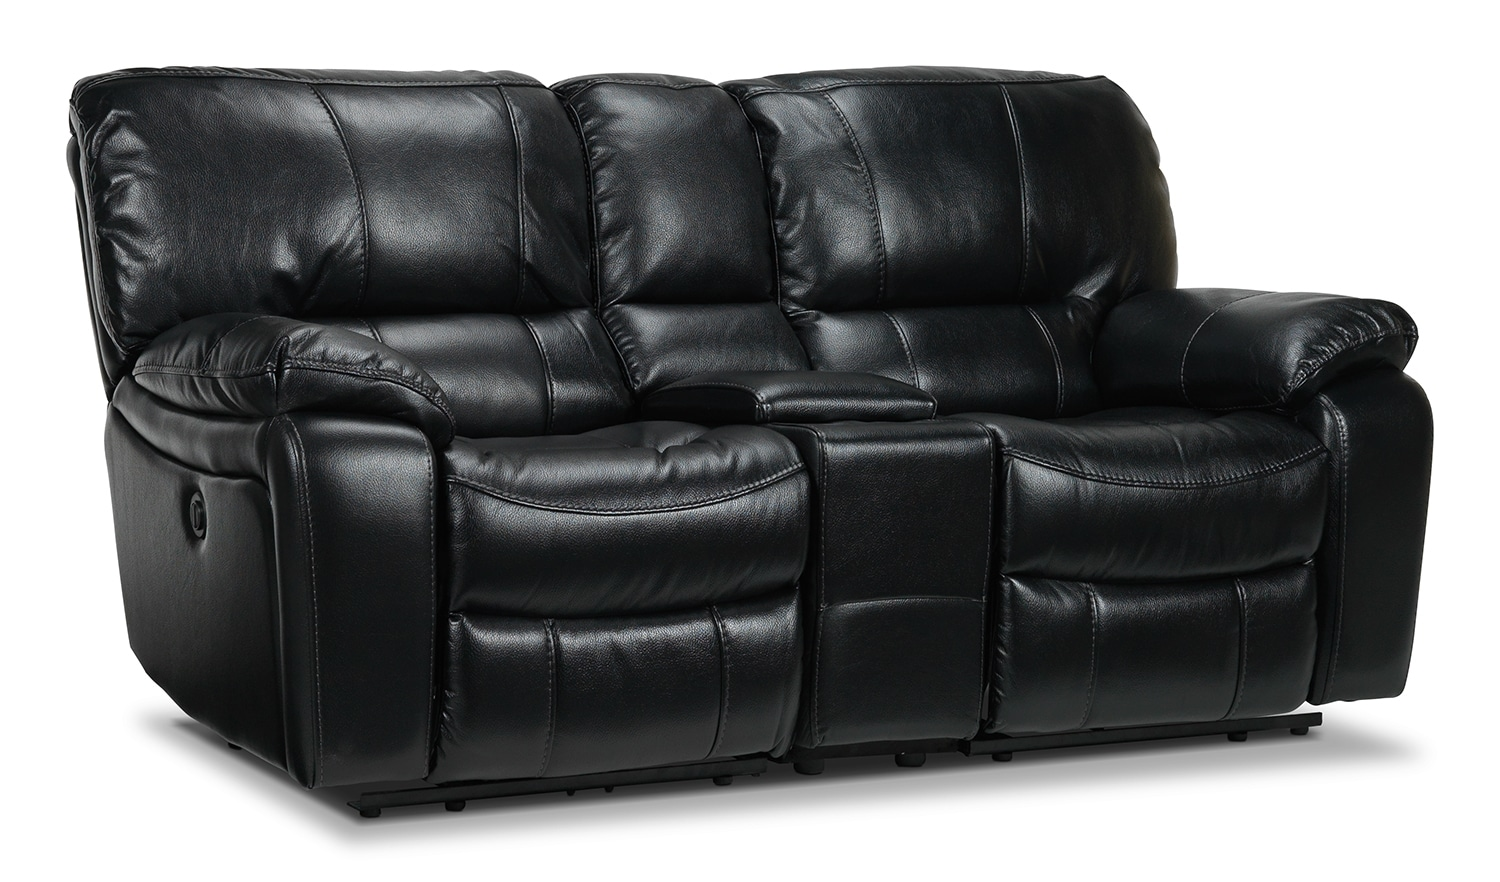 Santorini Power Reclining Loveseat - Black